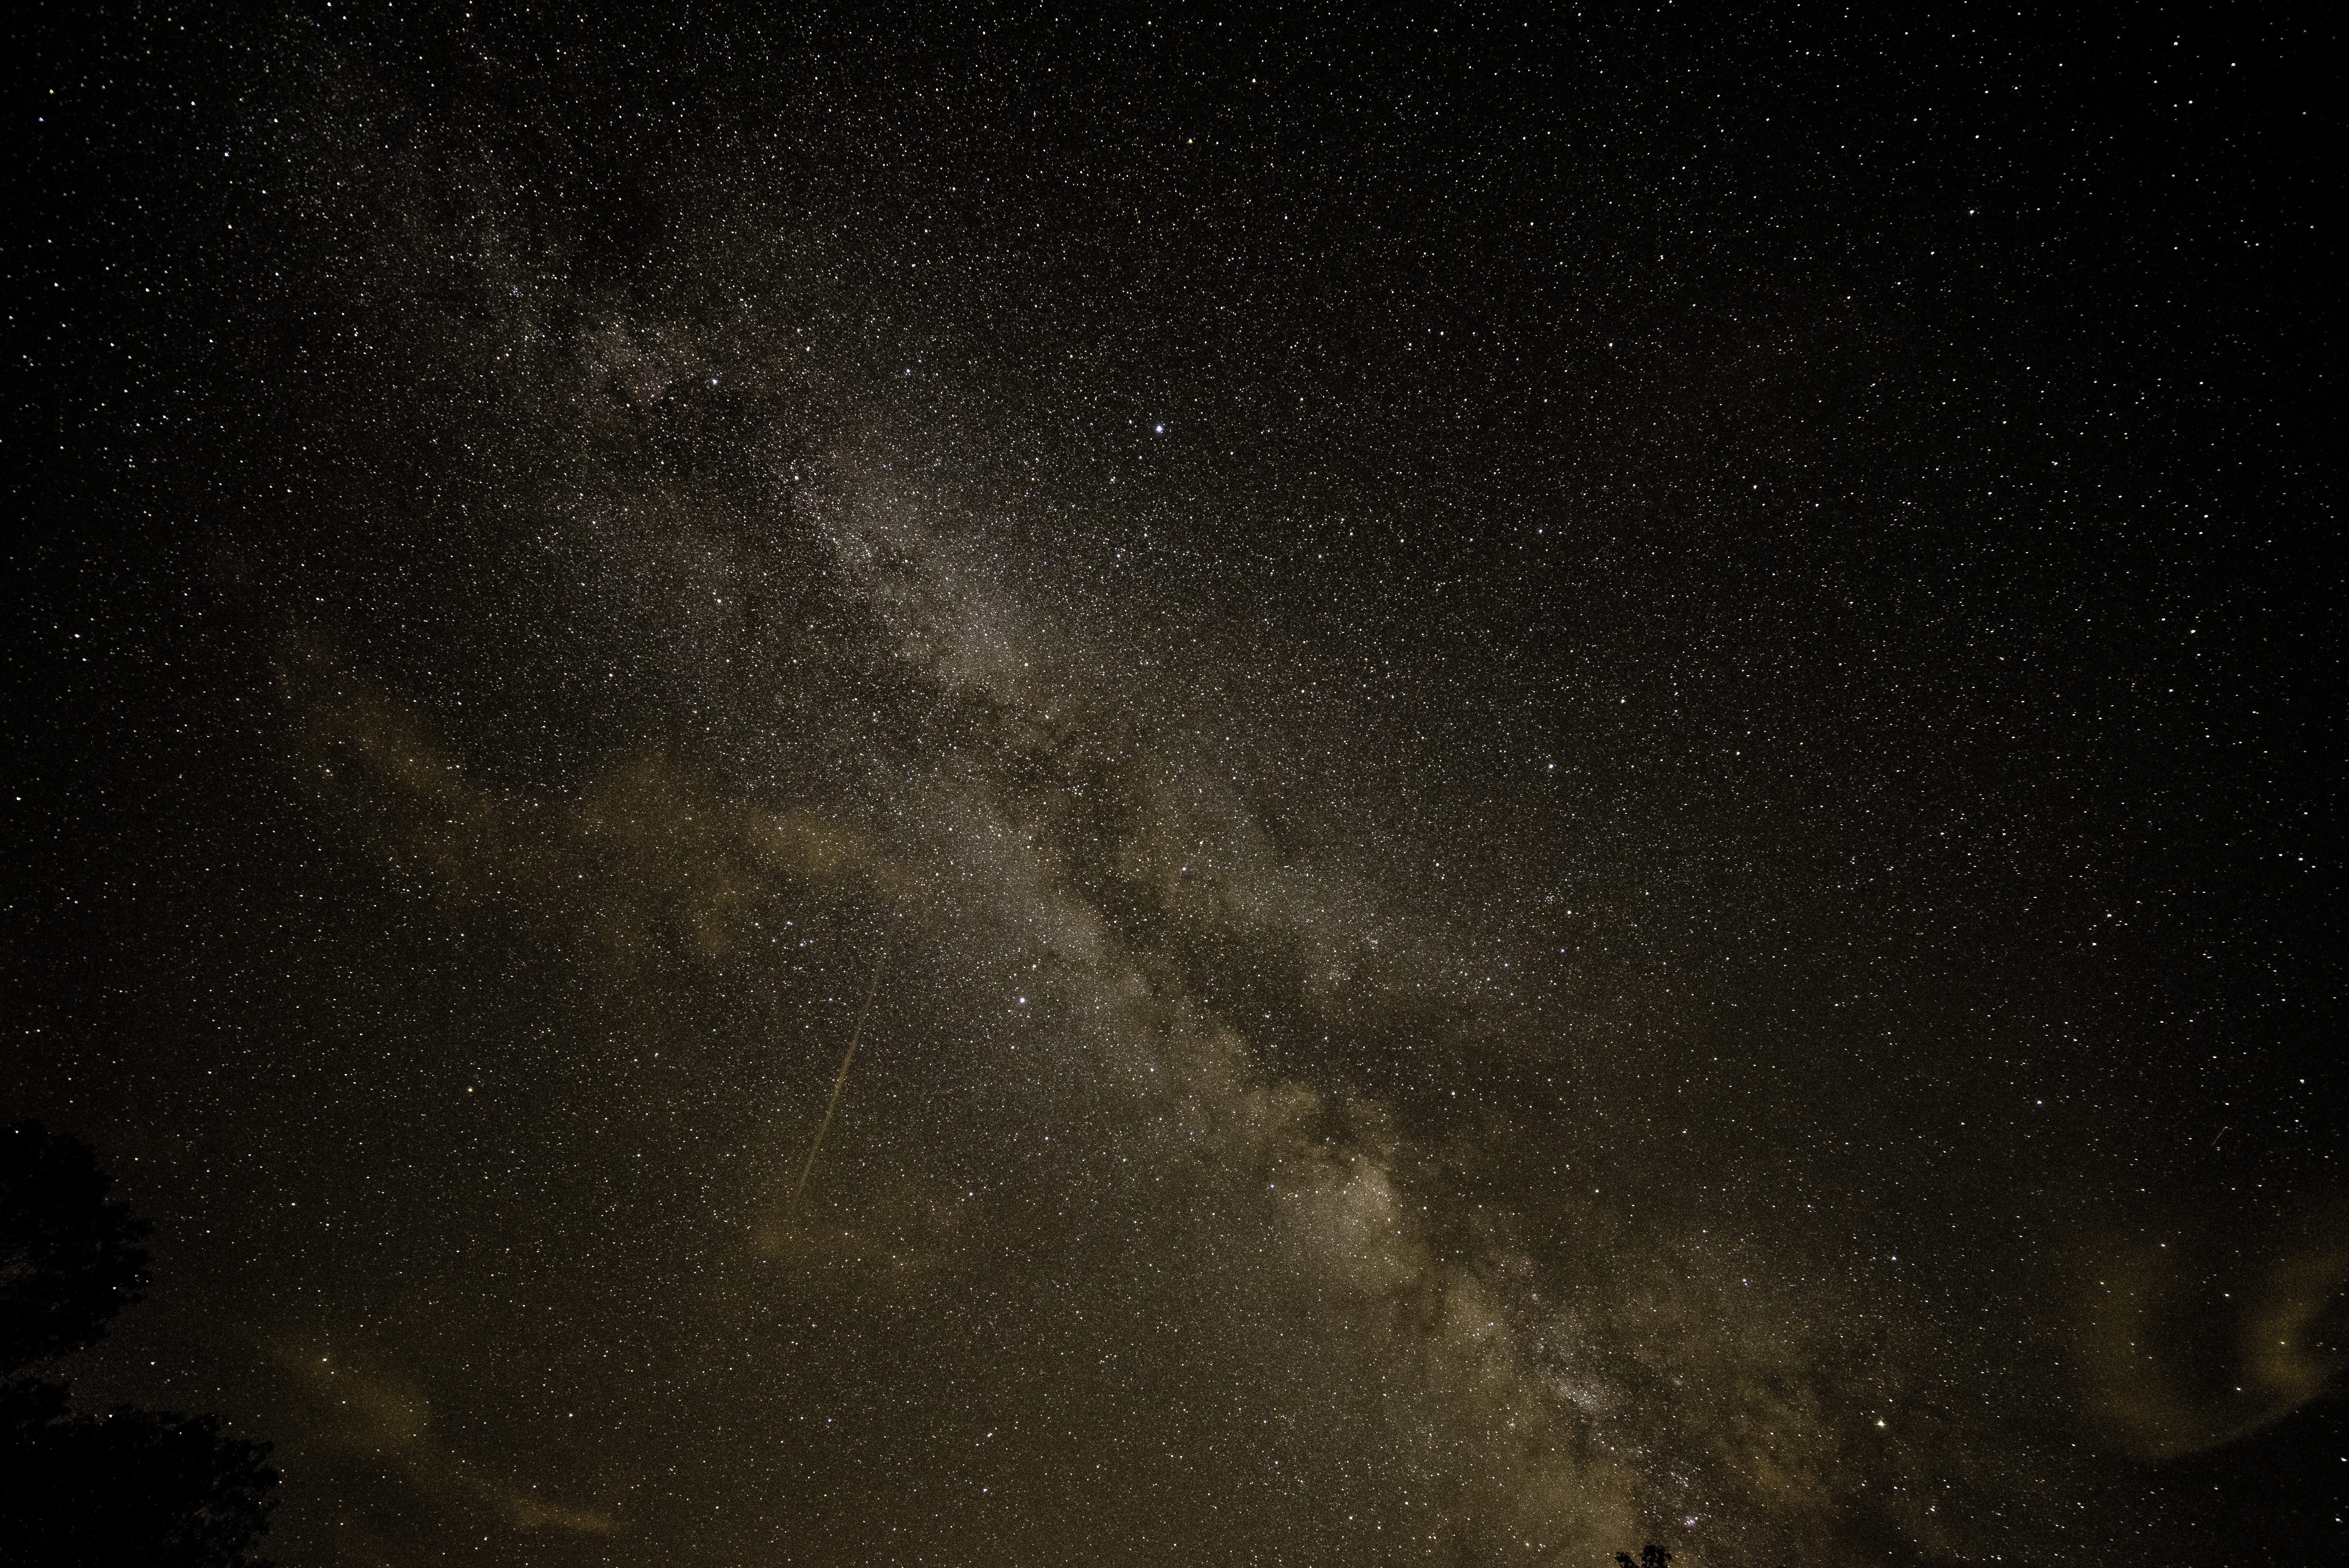 Milky Way Stretched Out Across The Sky At Meadow Valley Wisconsin